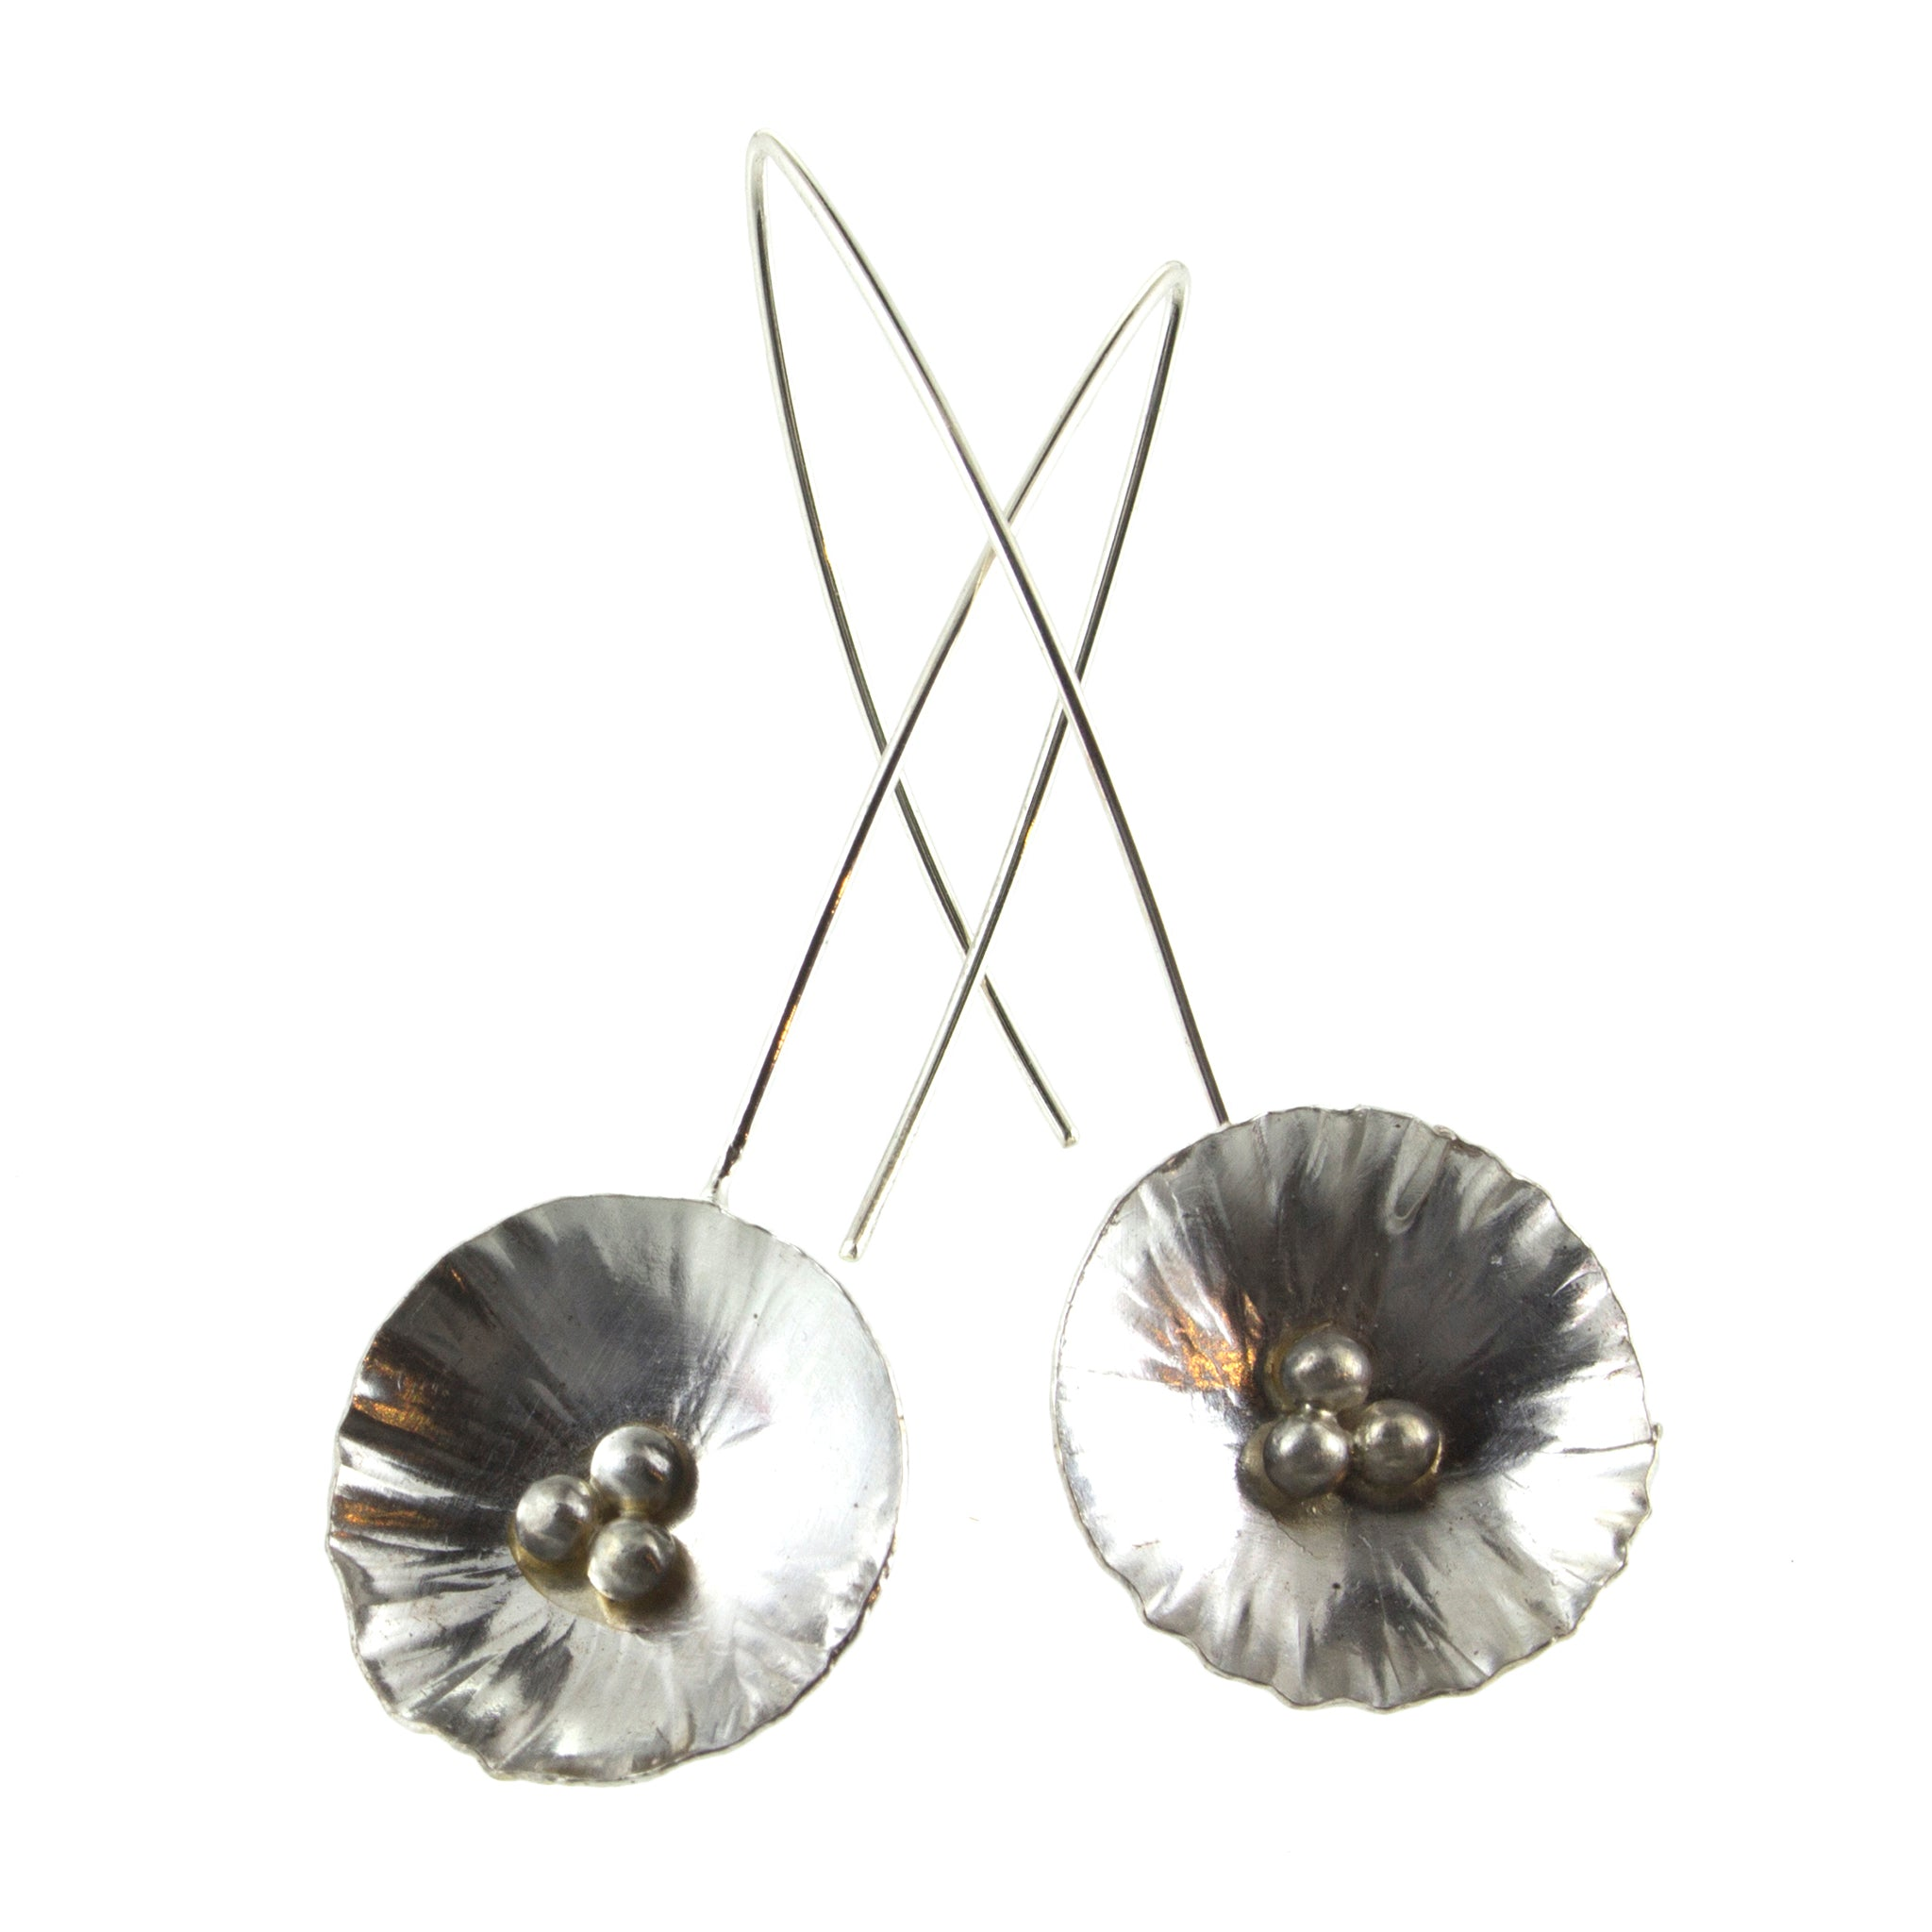 Sterling silver flower threader earrings by eko jewelry design, Allysa